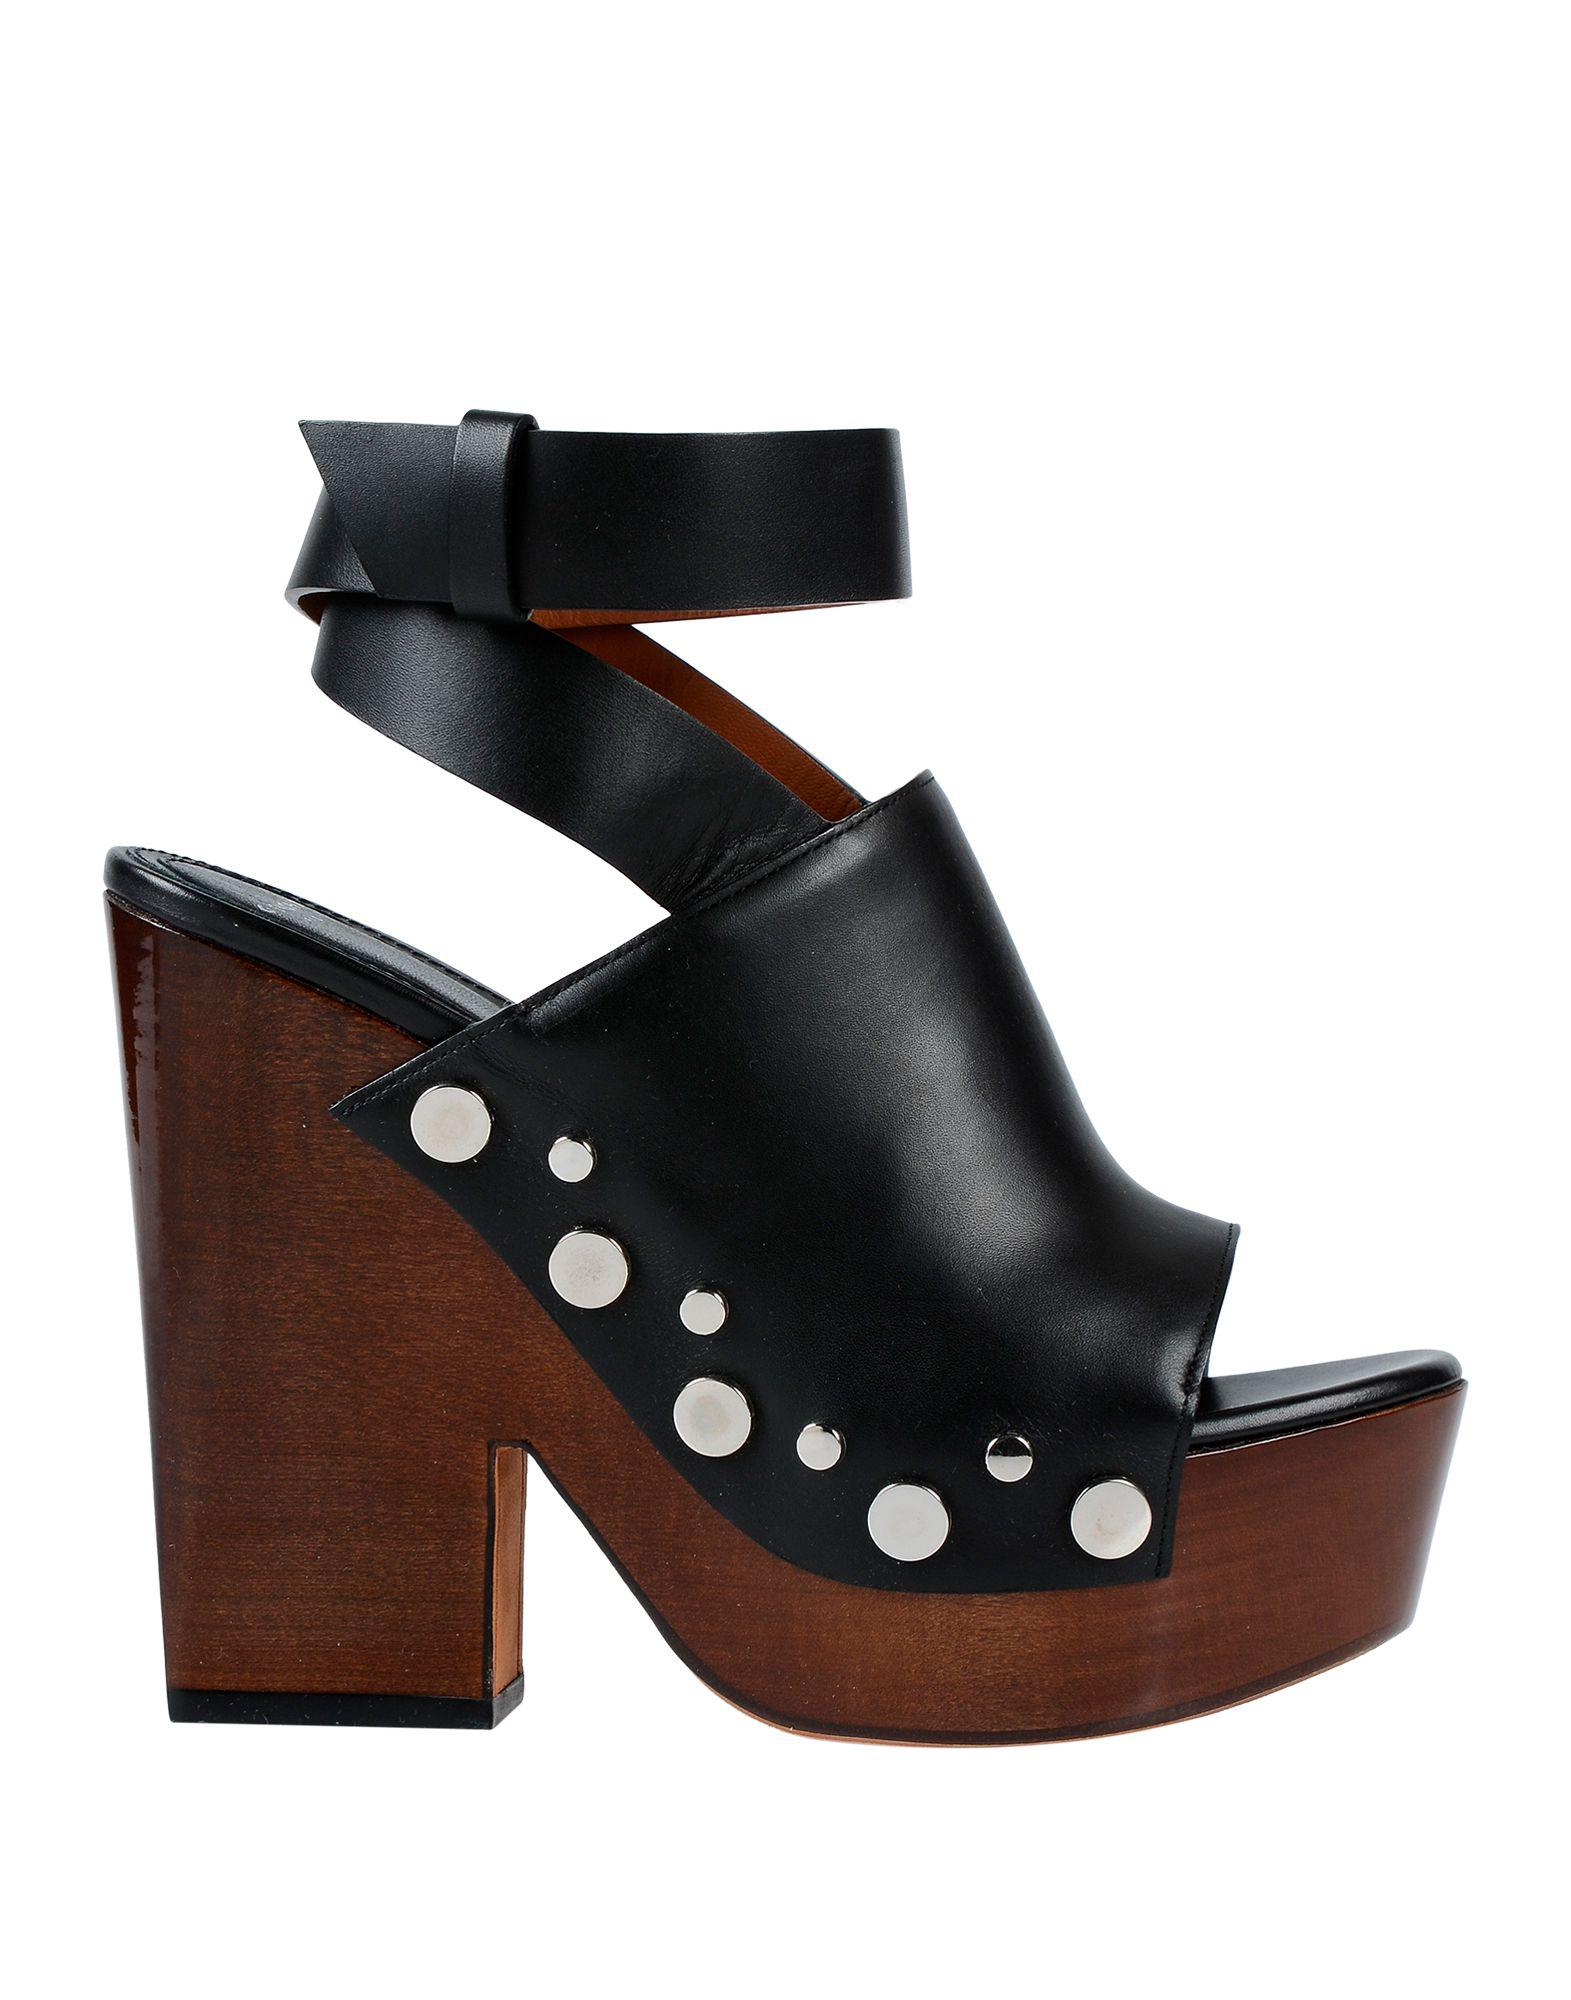 bf81e650c35 Lyst - Givenchy Sandals in Black